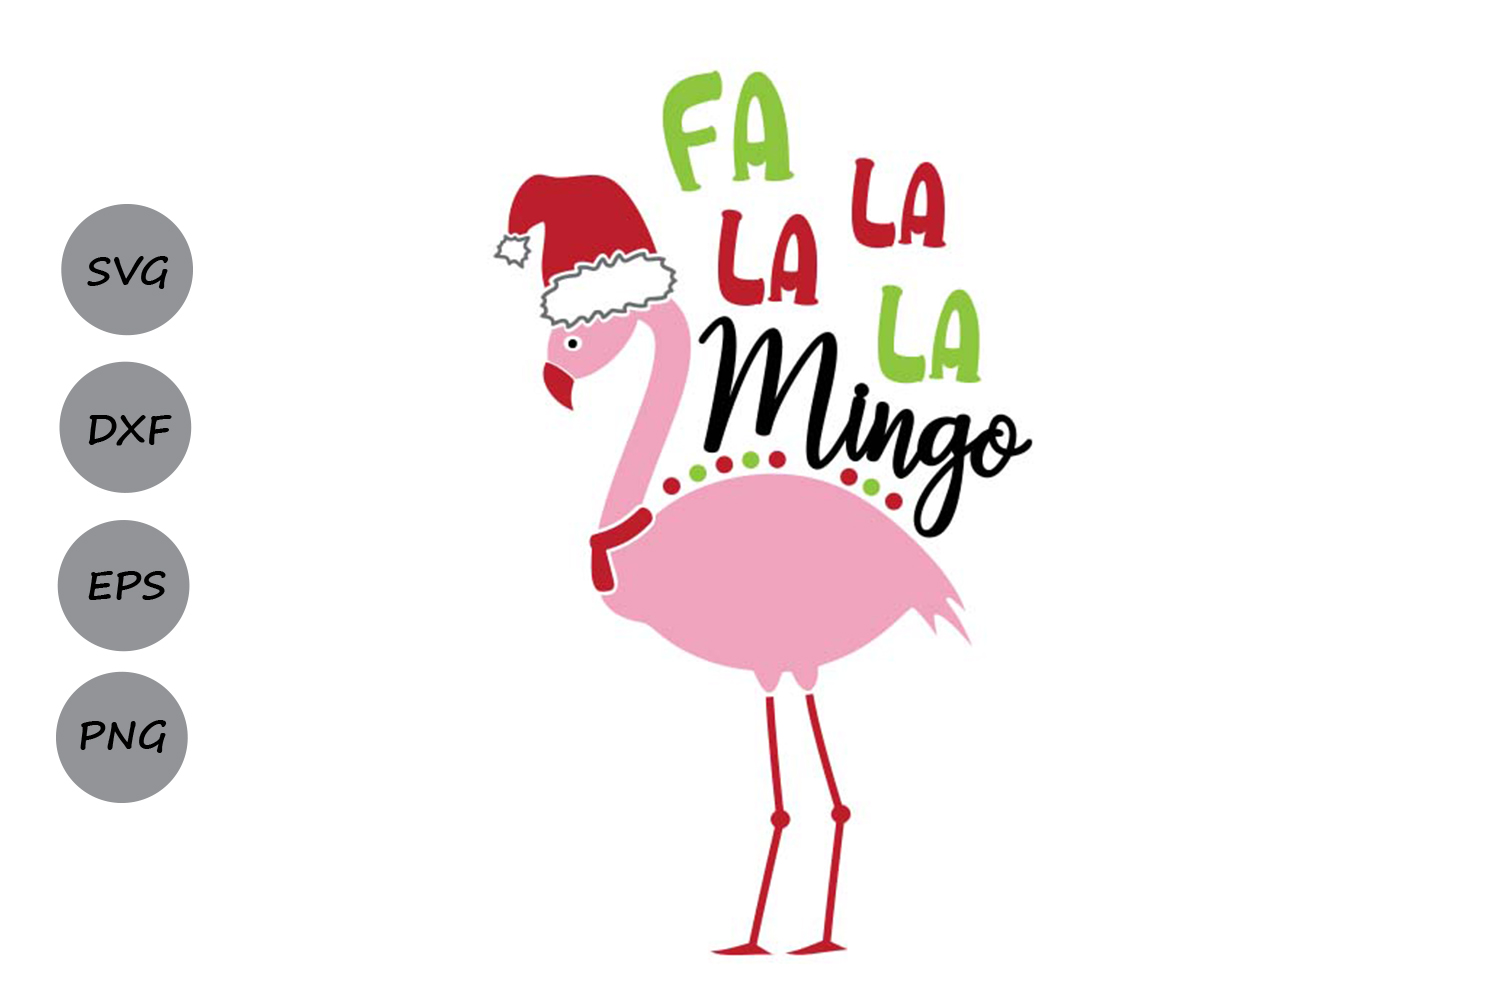 Download Free Fa La La La Mingo Svg Graphic By Cosmosfineart Creative Fabrica for Cricut Explore, Silhouette and other cutting machines.